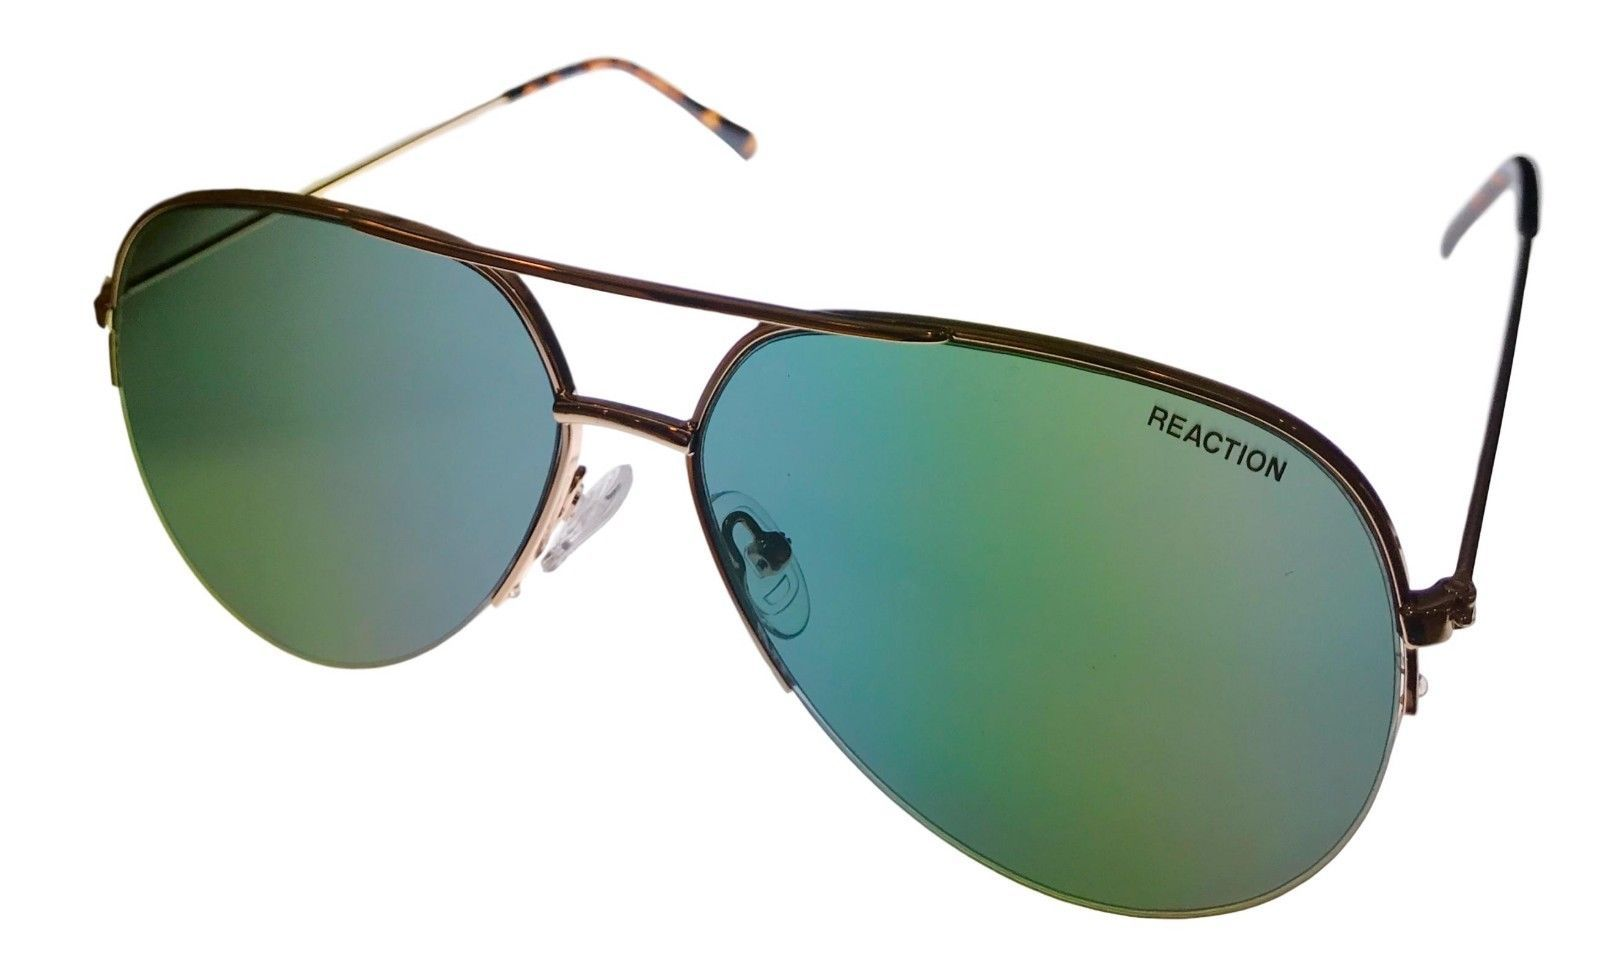 Primary image for Kenneth Cole Reaction Mens Sunglass Gold Rimless Aviator, KC1307 32N